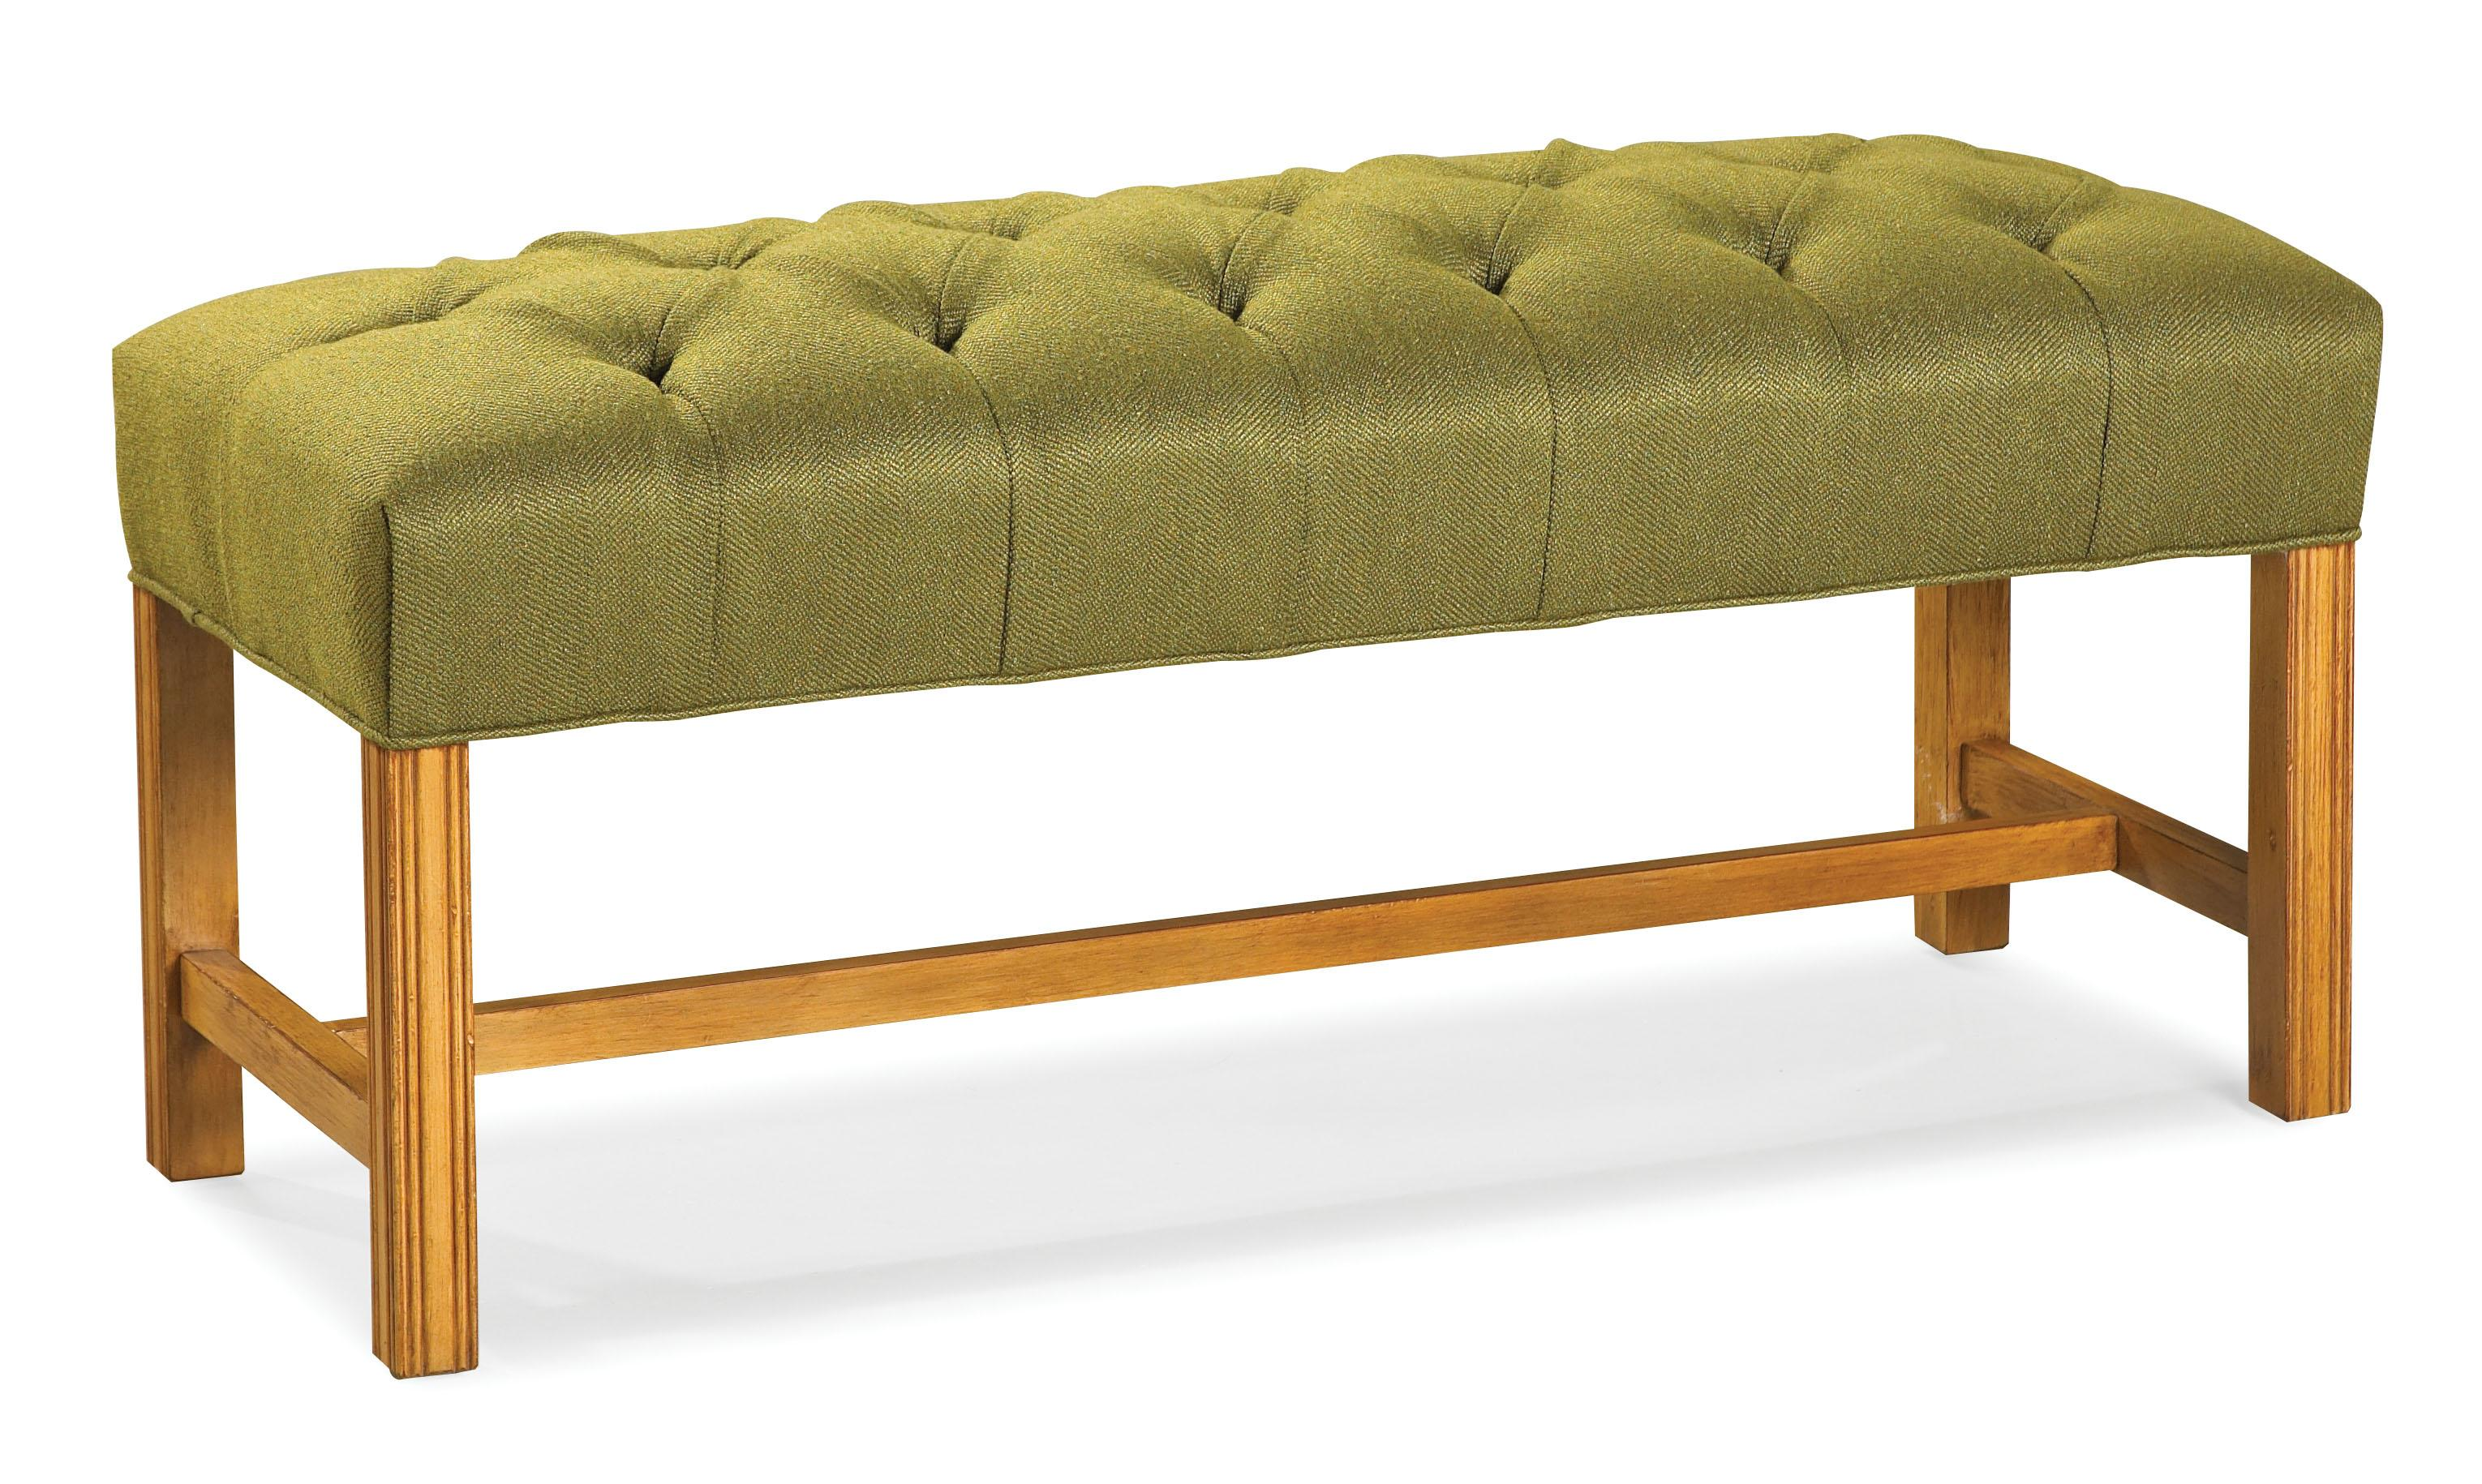 Fairfield Benches Bench - Item Number: 1640-10